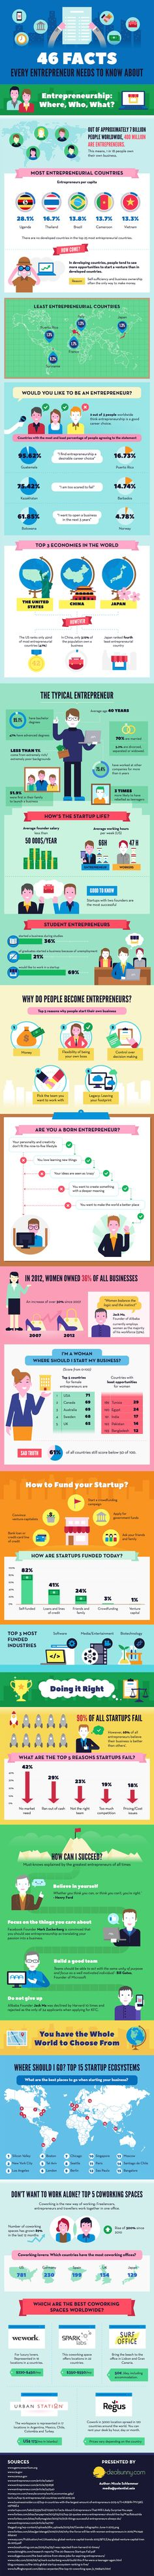 Before embarking on your entrepreneurial journey, check out this handy graphic.